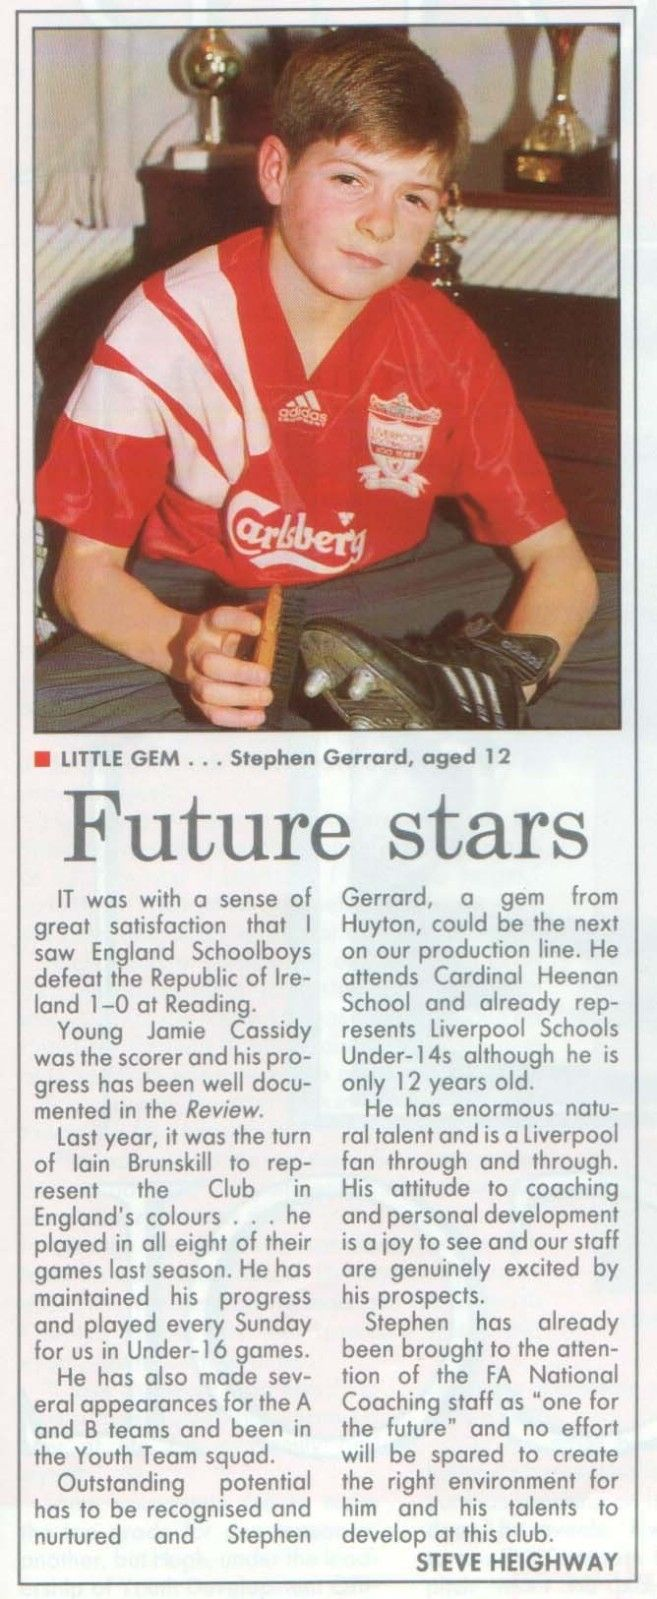 An article from 19 years ago about Steven Gerrard